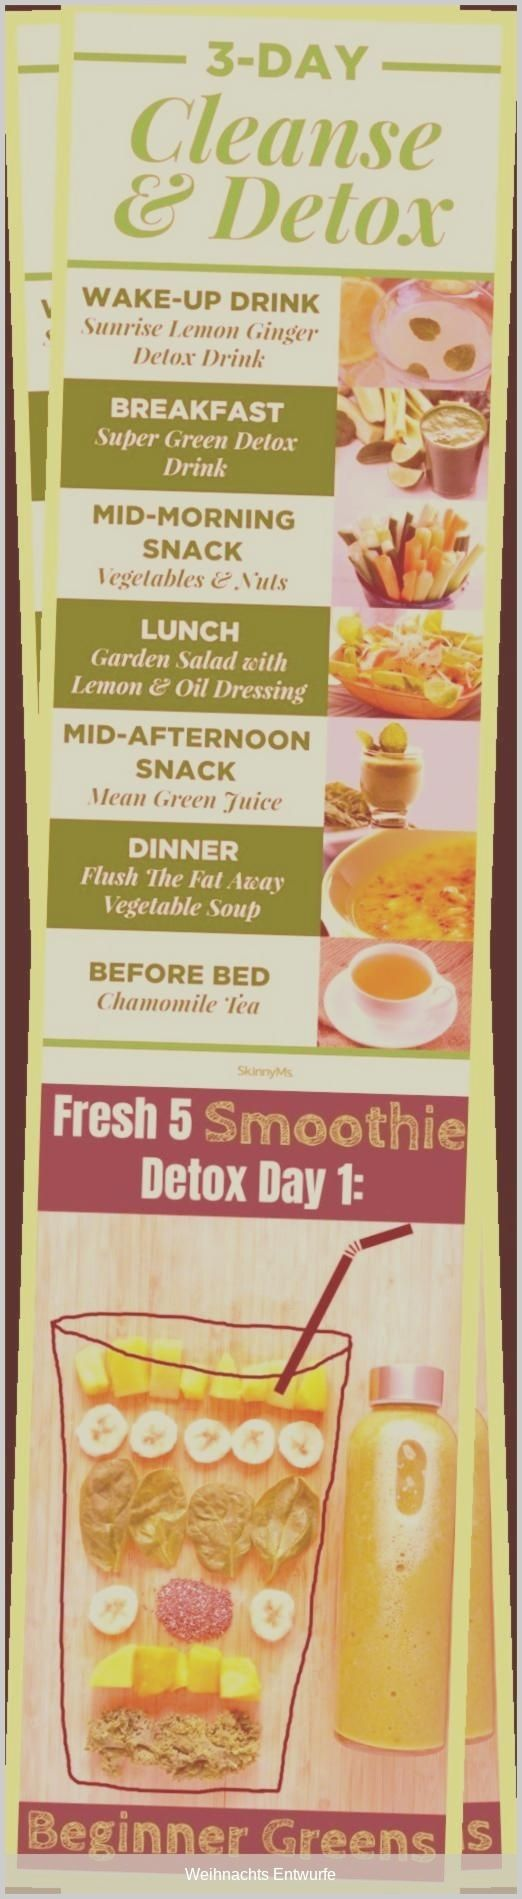 earth diet 3 day cleanse